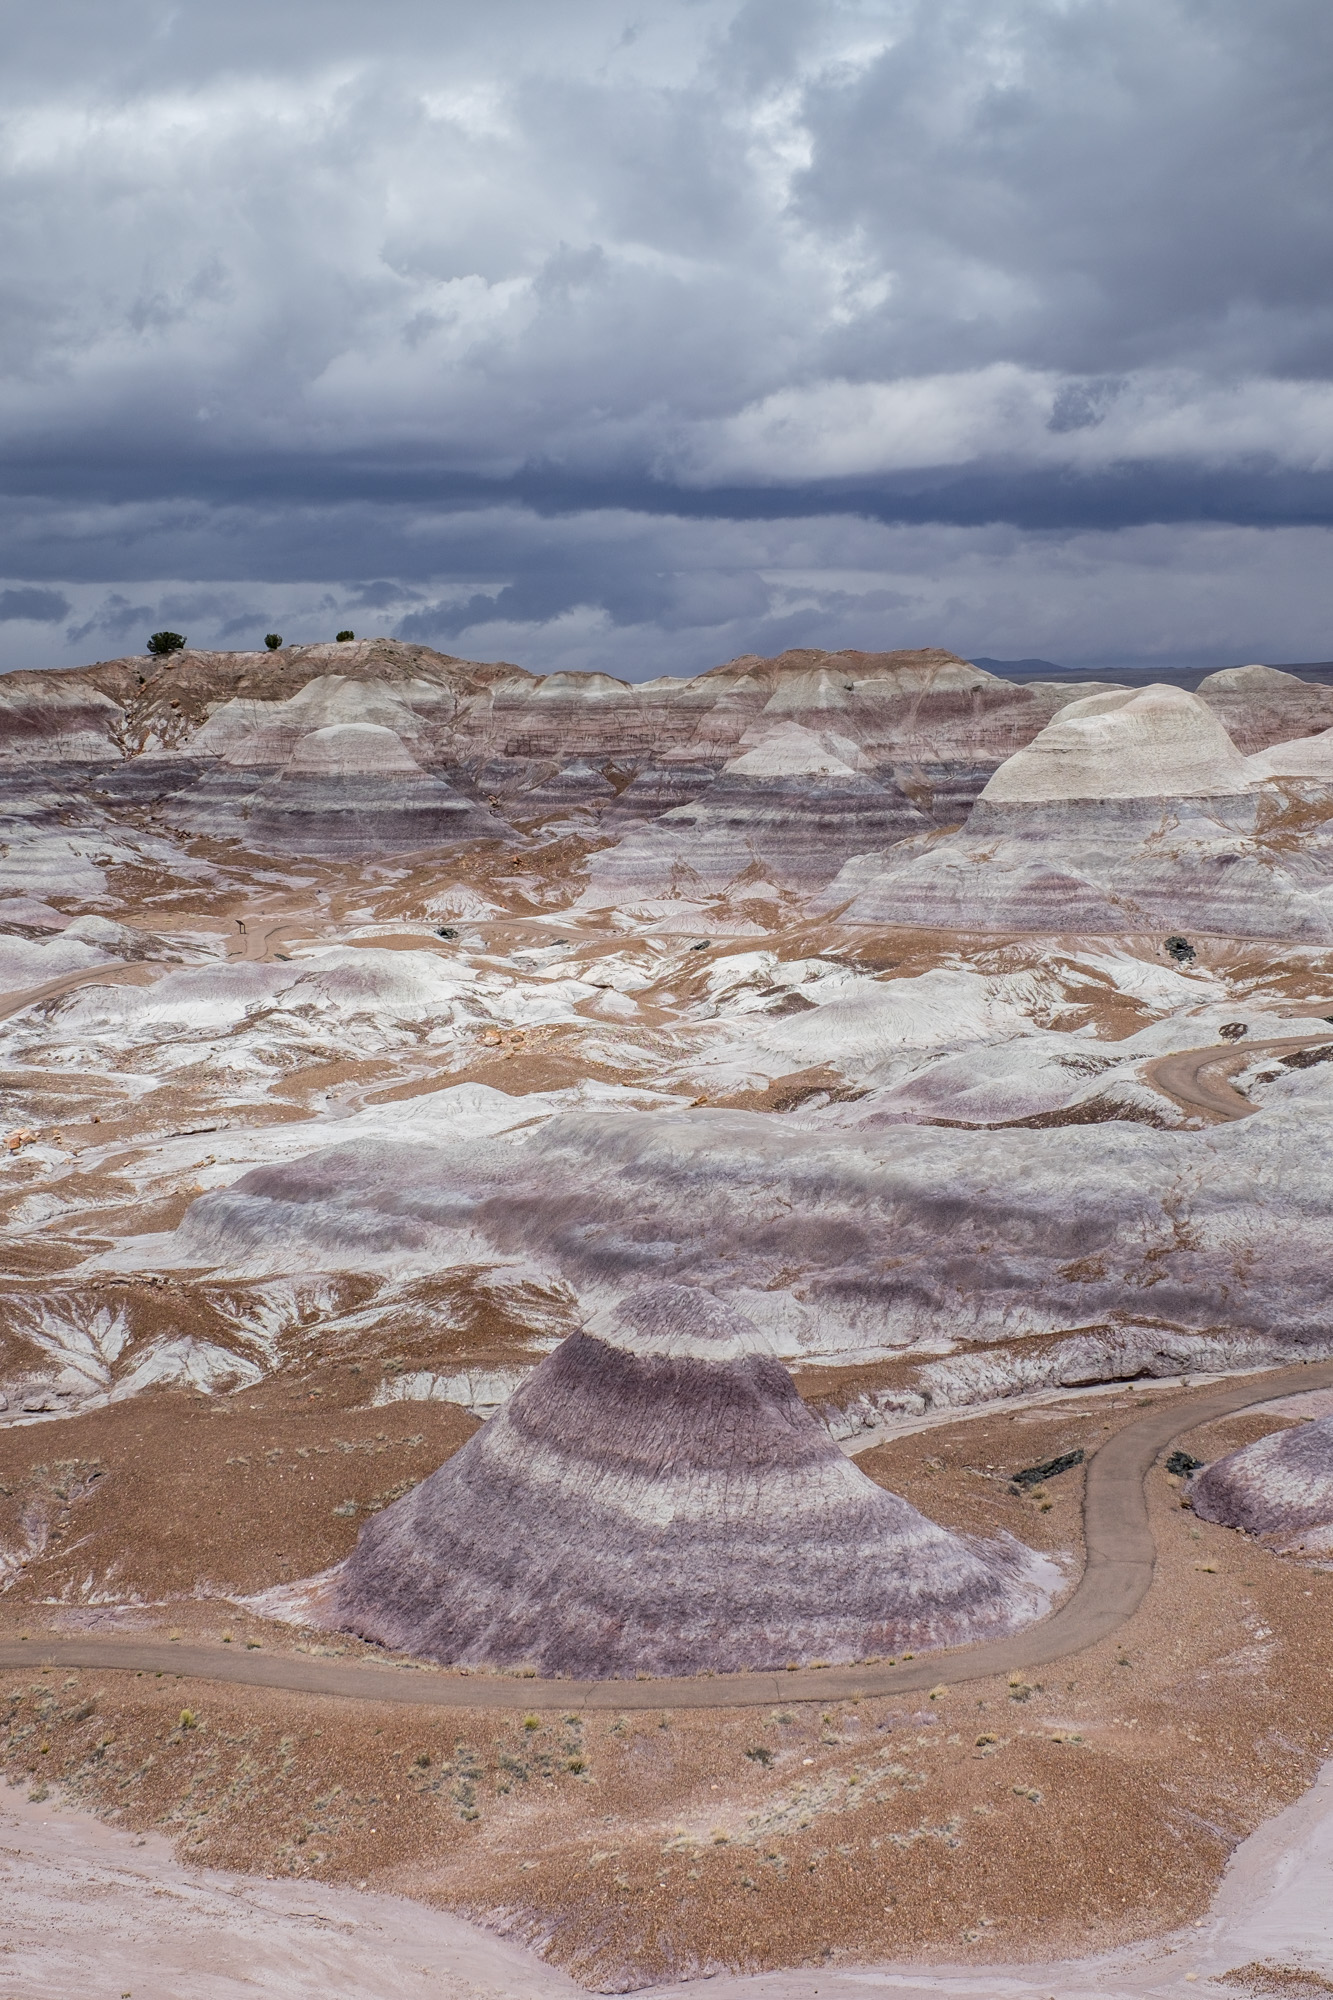 On another visit to Blue Mesa, the clouds made for interesting lighting on the hills.